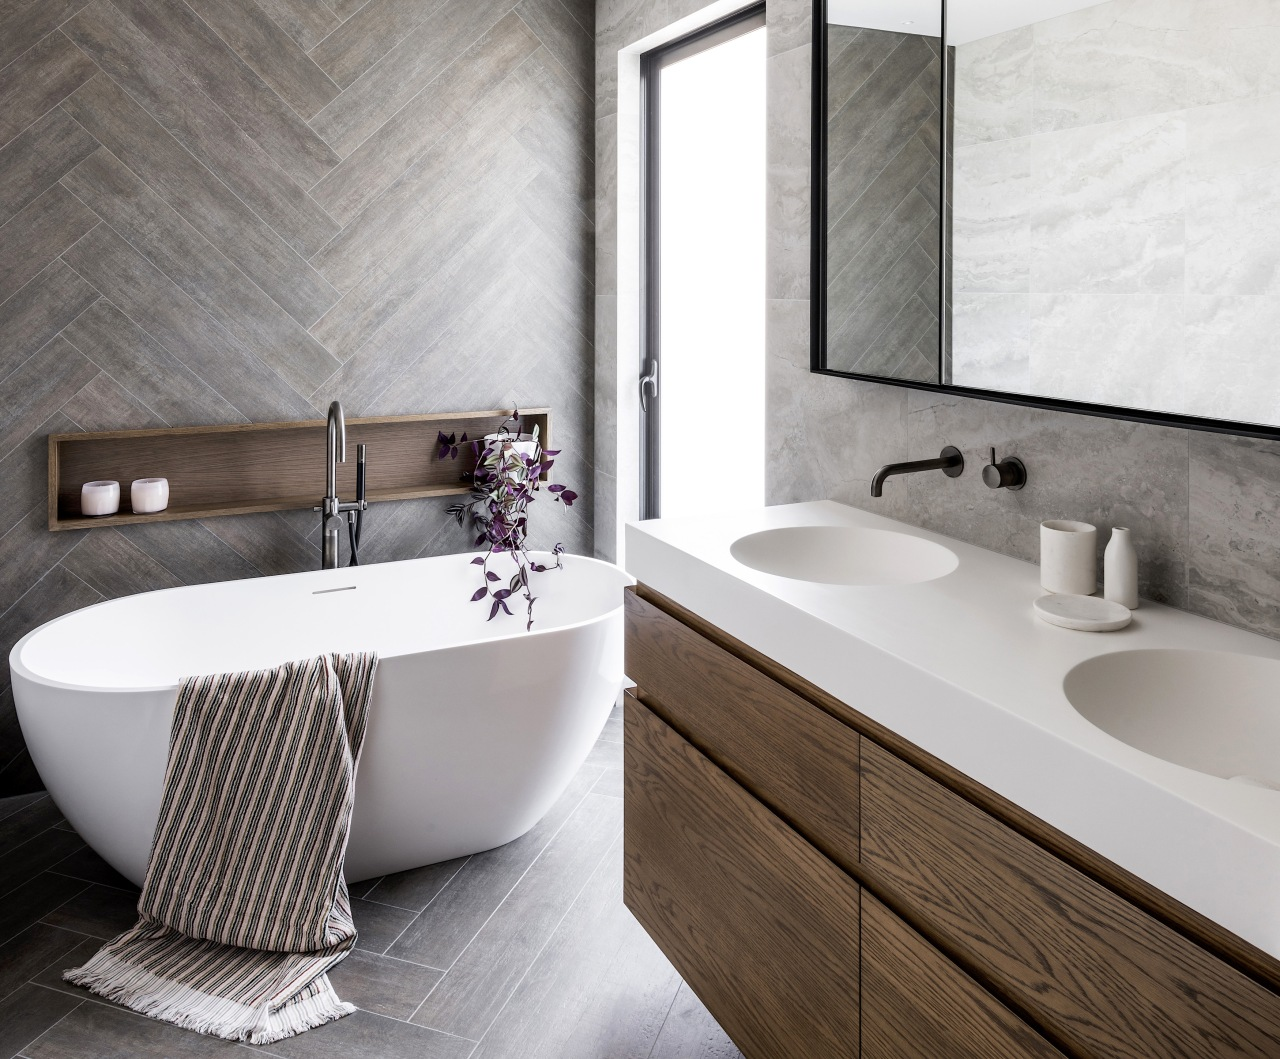 In this bathroom by Detail by Davinia Sutton,